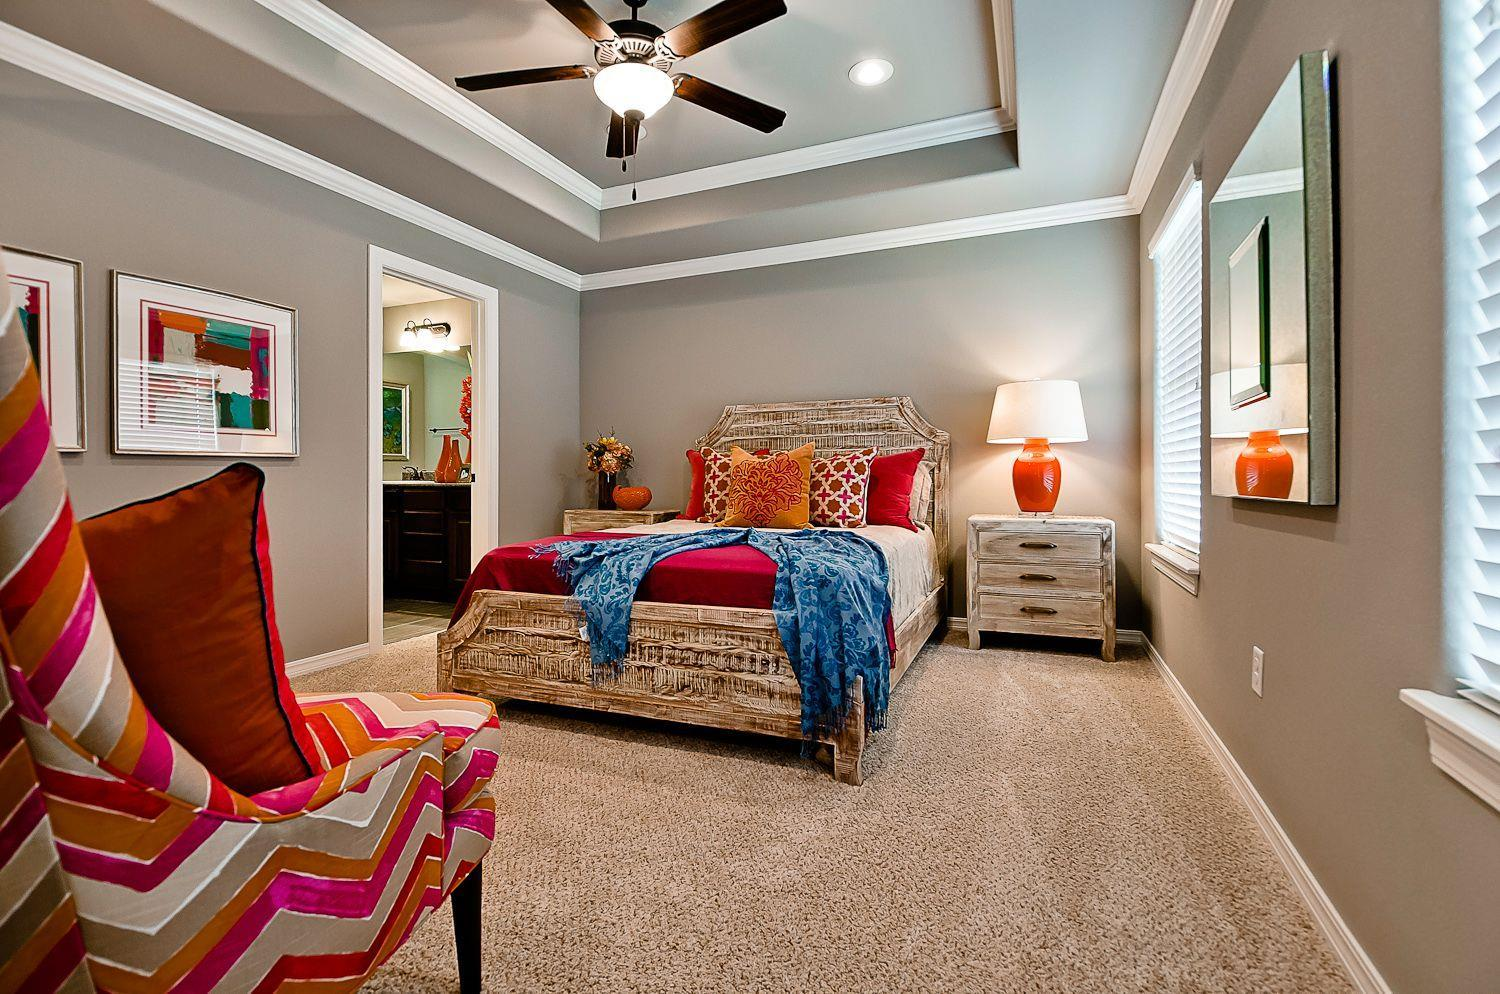 Bedroom featured in the Magnolia 1556 By Riverwood Homes - Arkansas in Fayetteville, AR